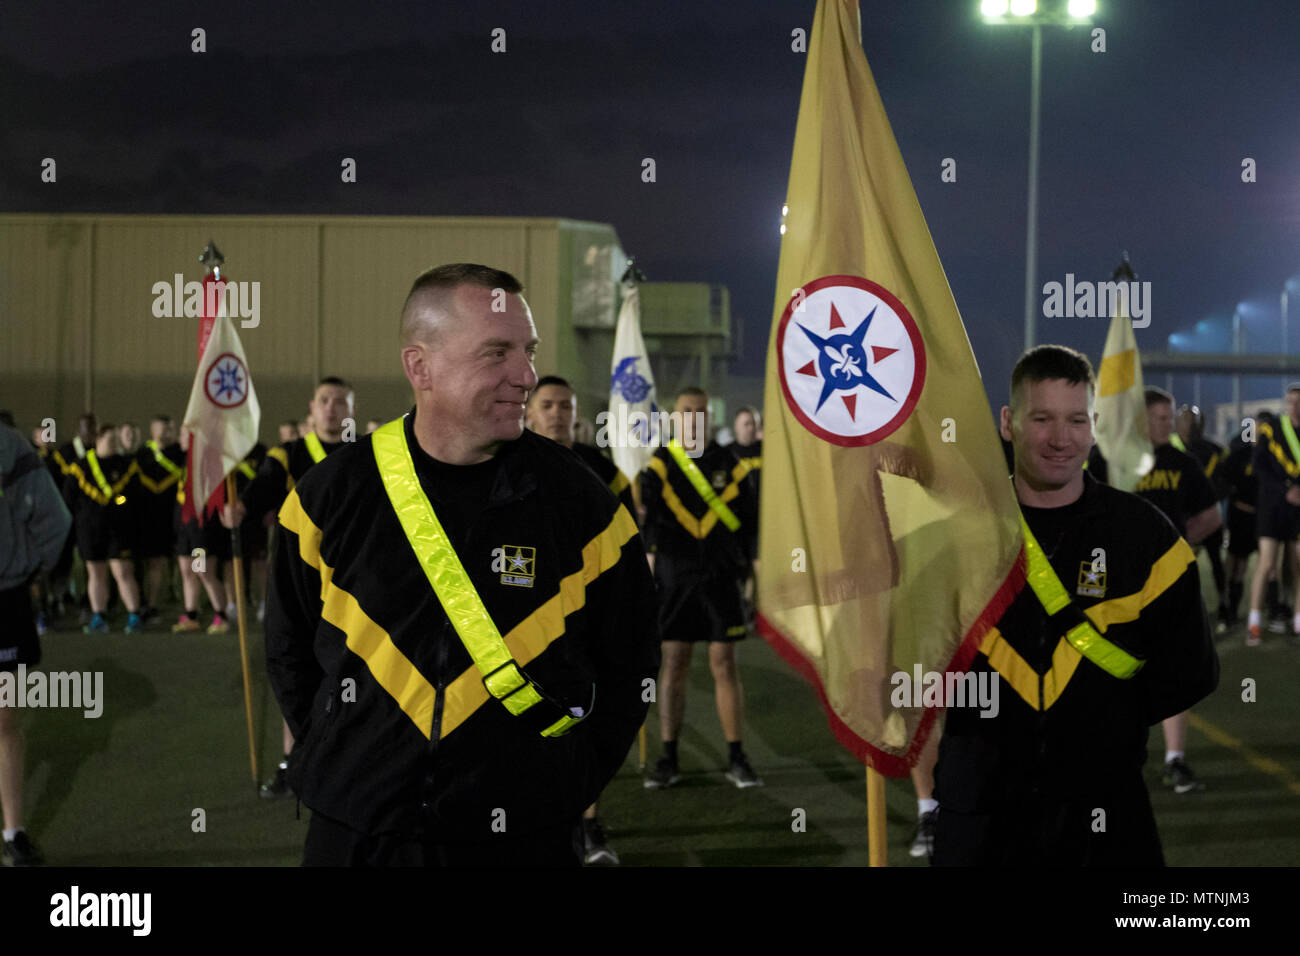 U.S. Army Reserve Soldiers, with the 316th Sustainment Command (Expeditionary), prepare to run a 5K with U.S. Army Reserve Commanding General Lt. Gen. Charles D. Luckey at Camp Arifjan, Kuwait, Jan. 10, 2017. (U.S. Army Photo by Staff Sgt. Dalton Smith) - Stock Image